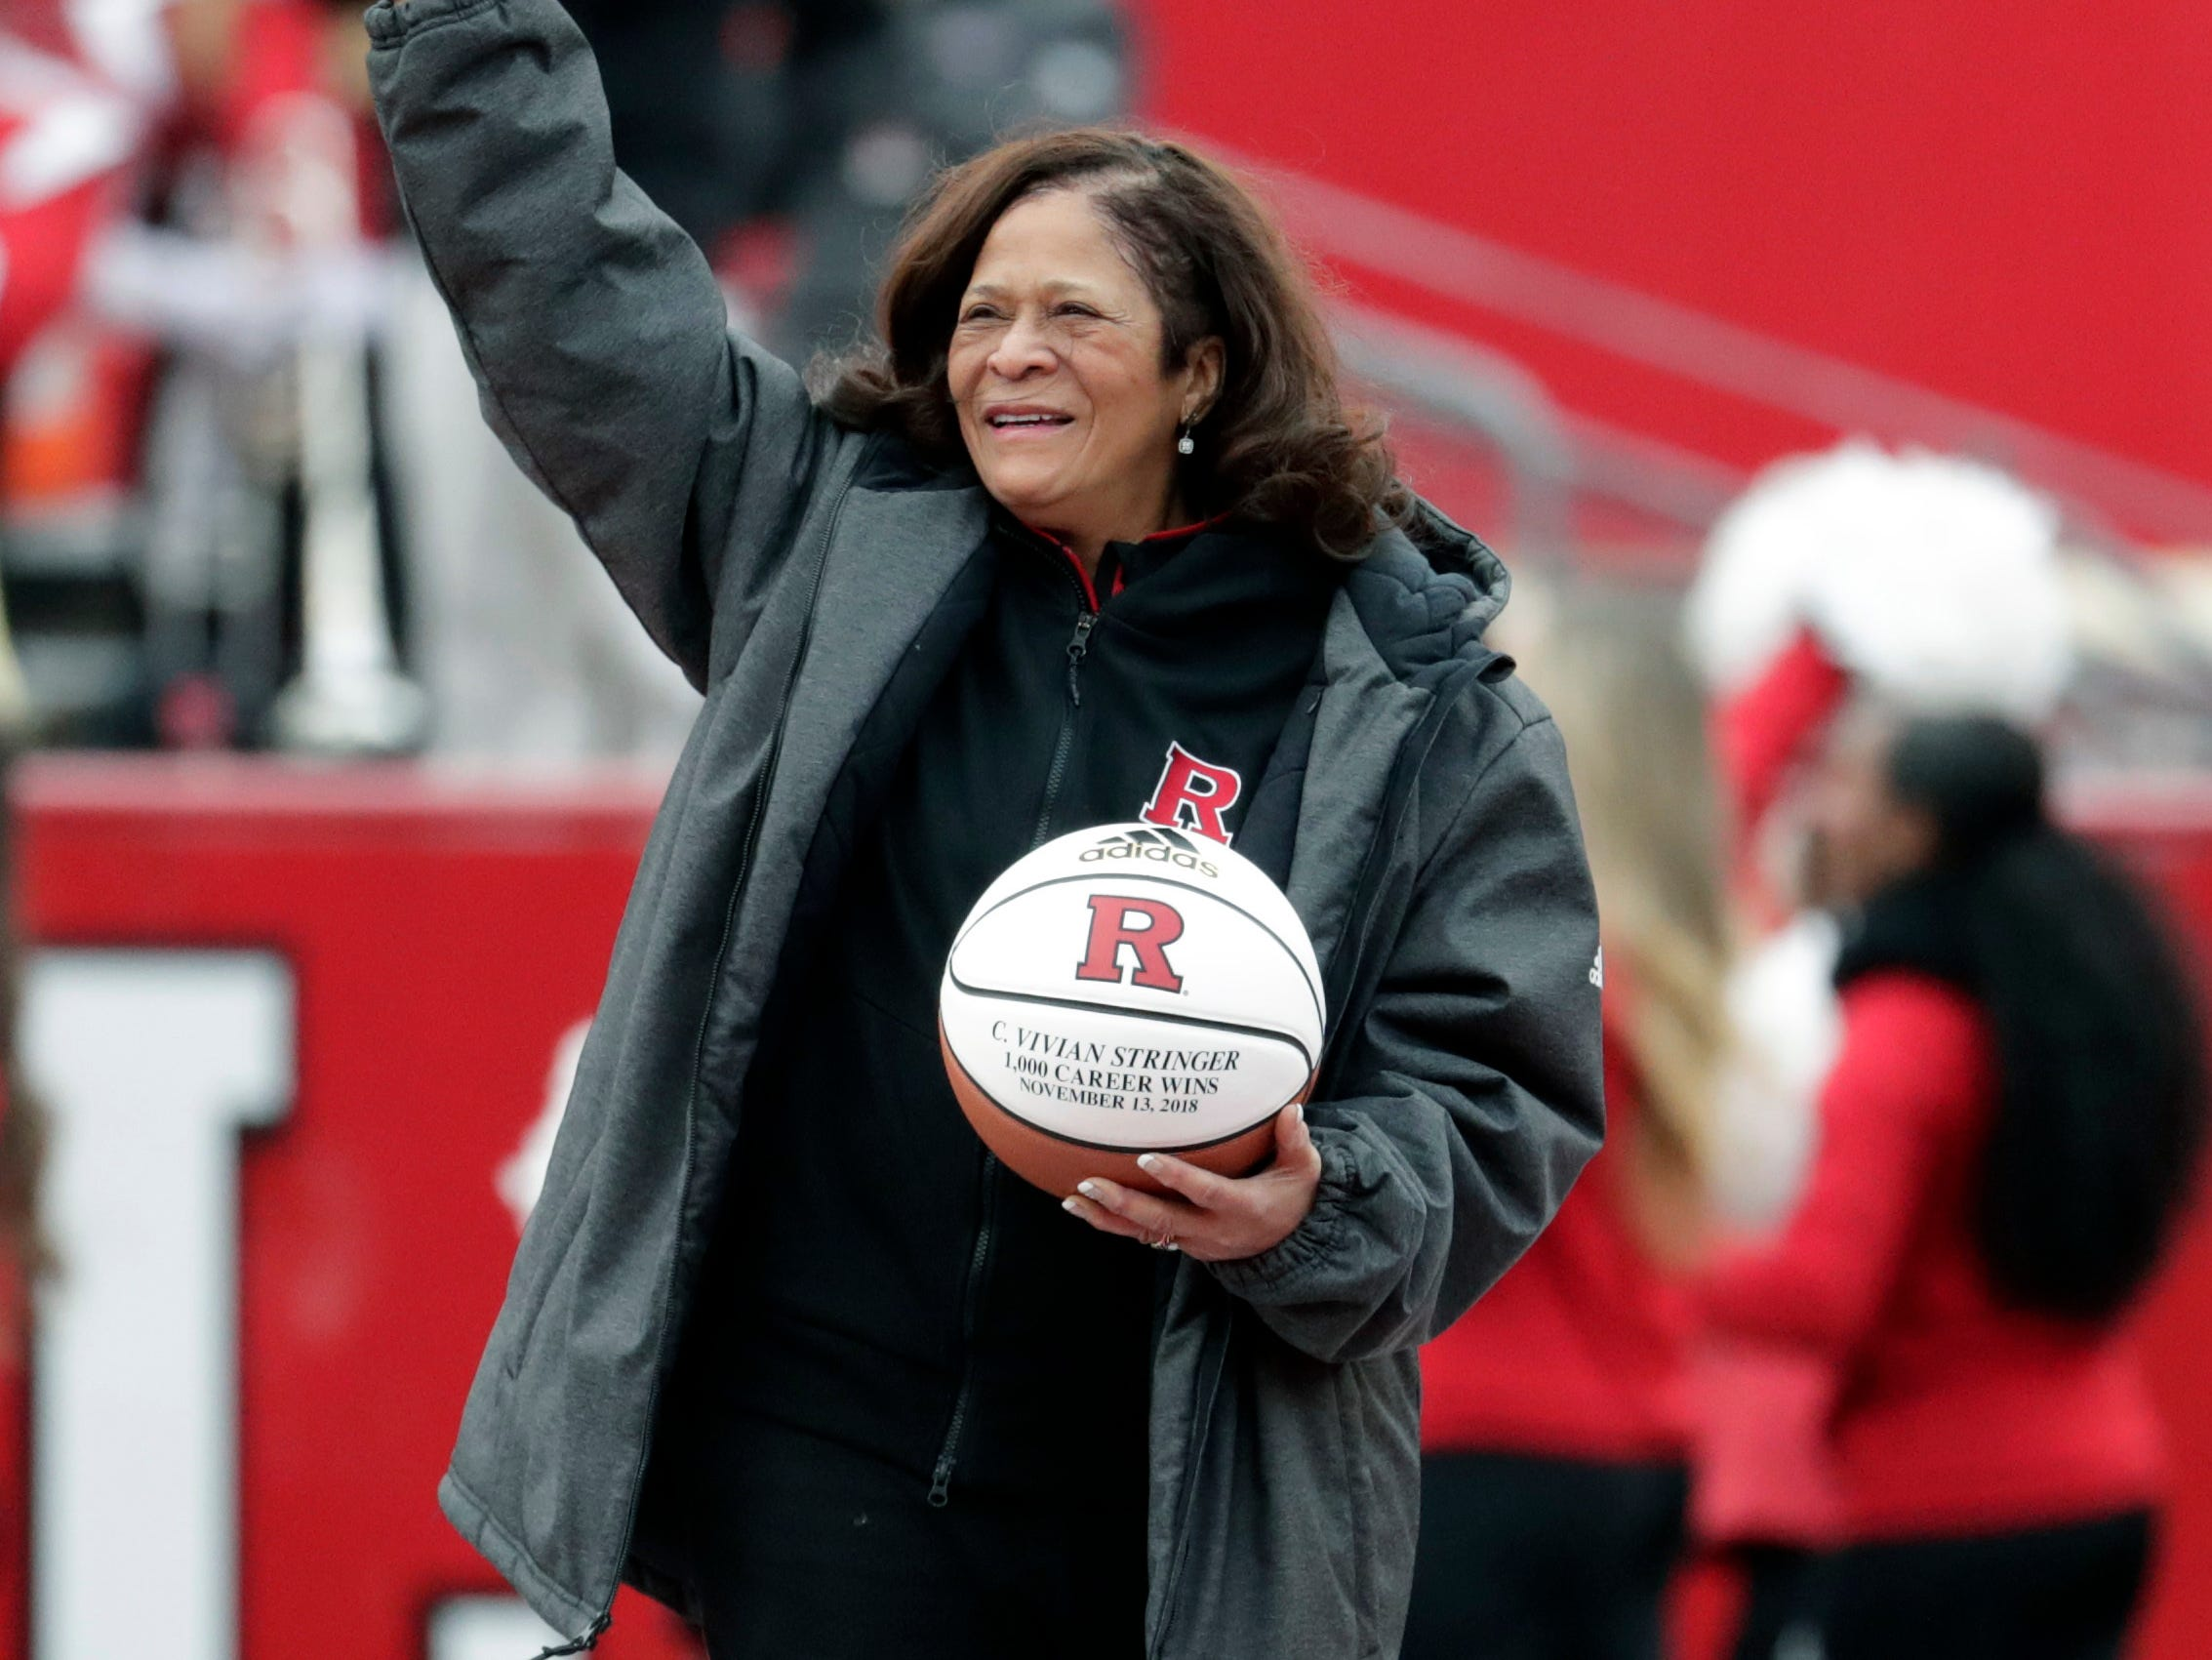 Rutgers women's basketball head coach C. Vivian Stringer is honored on the field during the first half of an NCAA college football game between Rutgers and Penn State, Saturday, Nov. 17, 2018, in Piscataway, N.J. Stringer recorded her 1,000th victory on Tuesday against Central Connecticut State. (AP Photo/Julio Cortez)